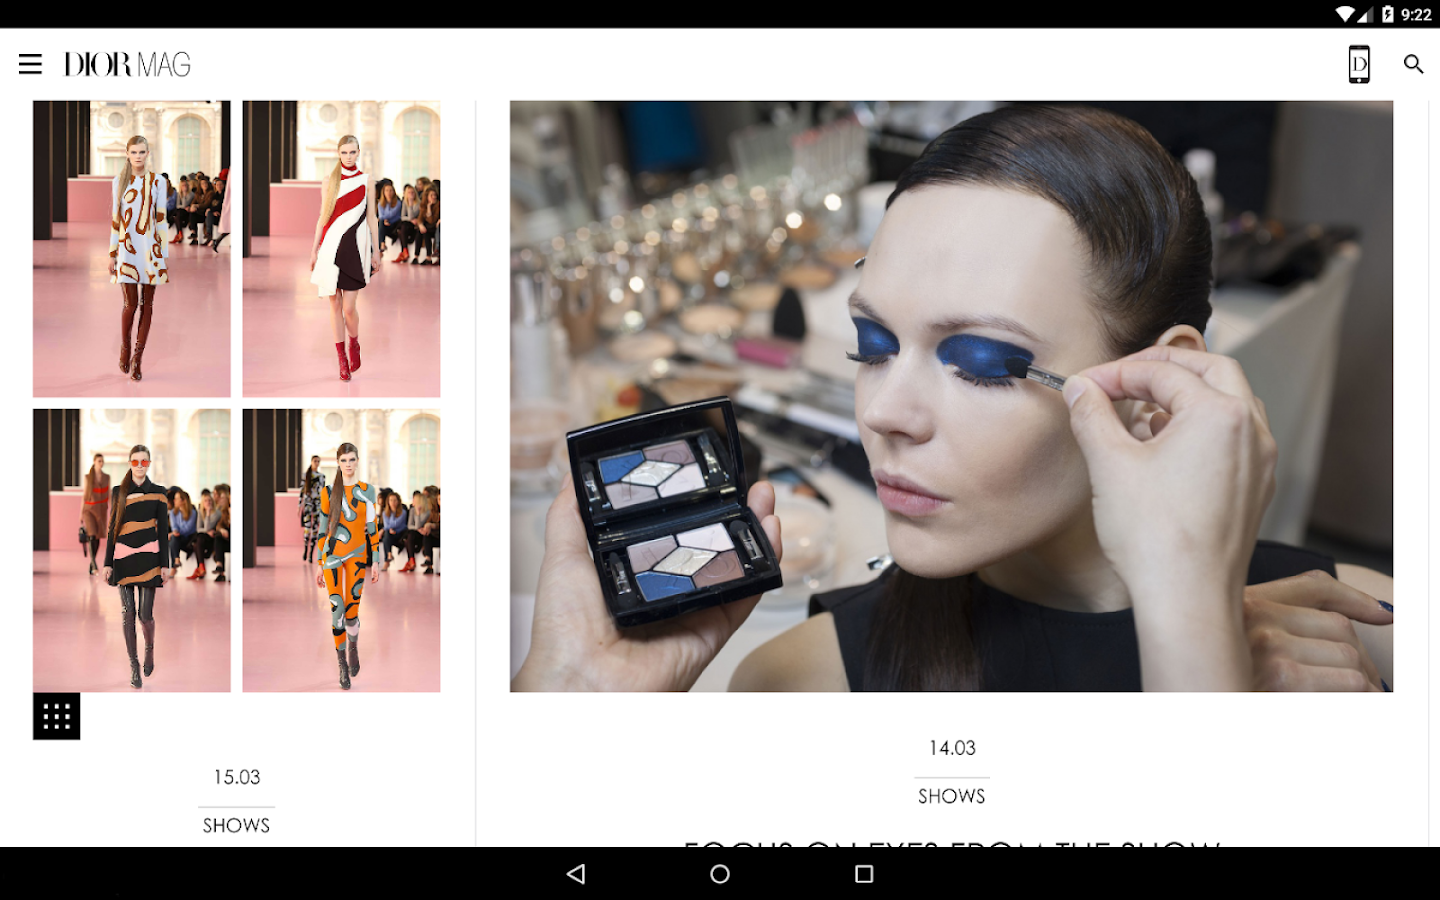 DIORMAG- screenshot